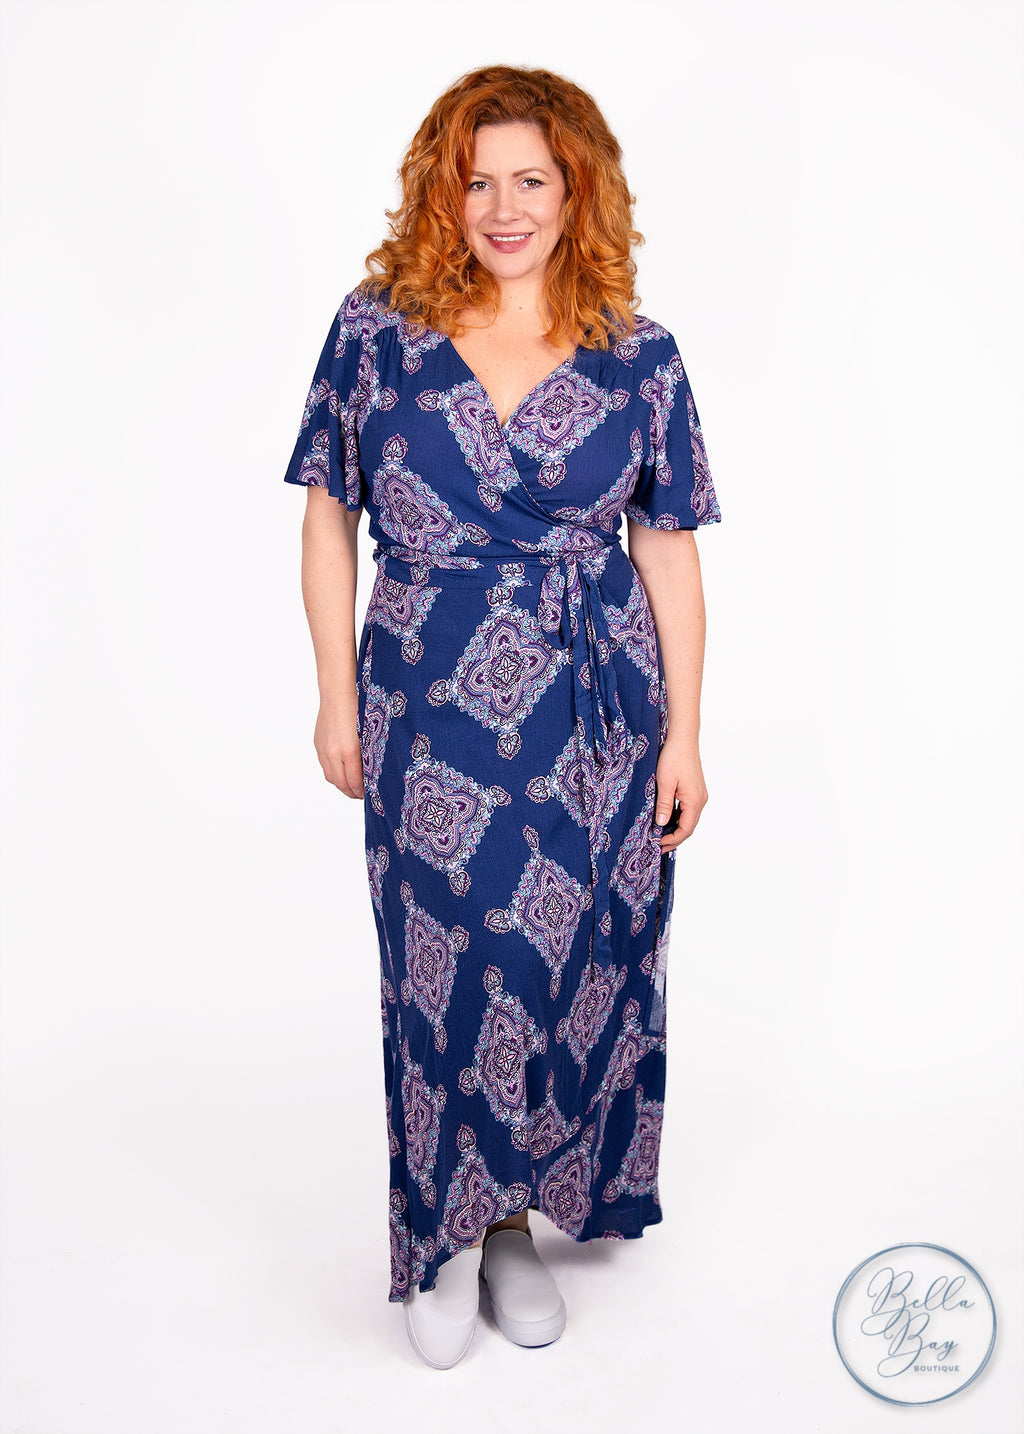 Paisley Raye Primrose Wrap Dress- Blue Medallion (2X) - Paisley Raye with Bella Bay Boutique, shop now at  https://shopbellabay.com/ or locally in Newport Oregon